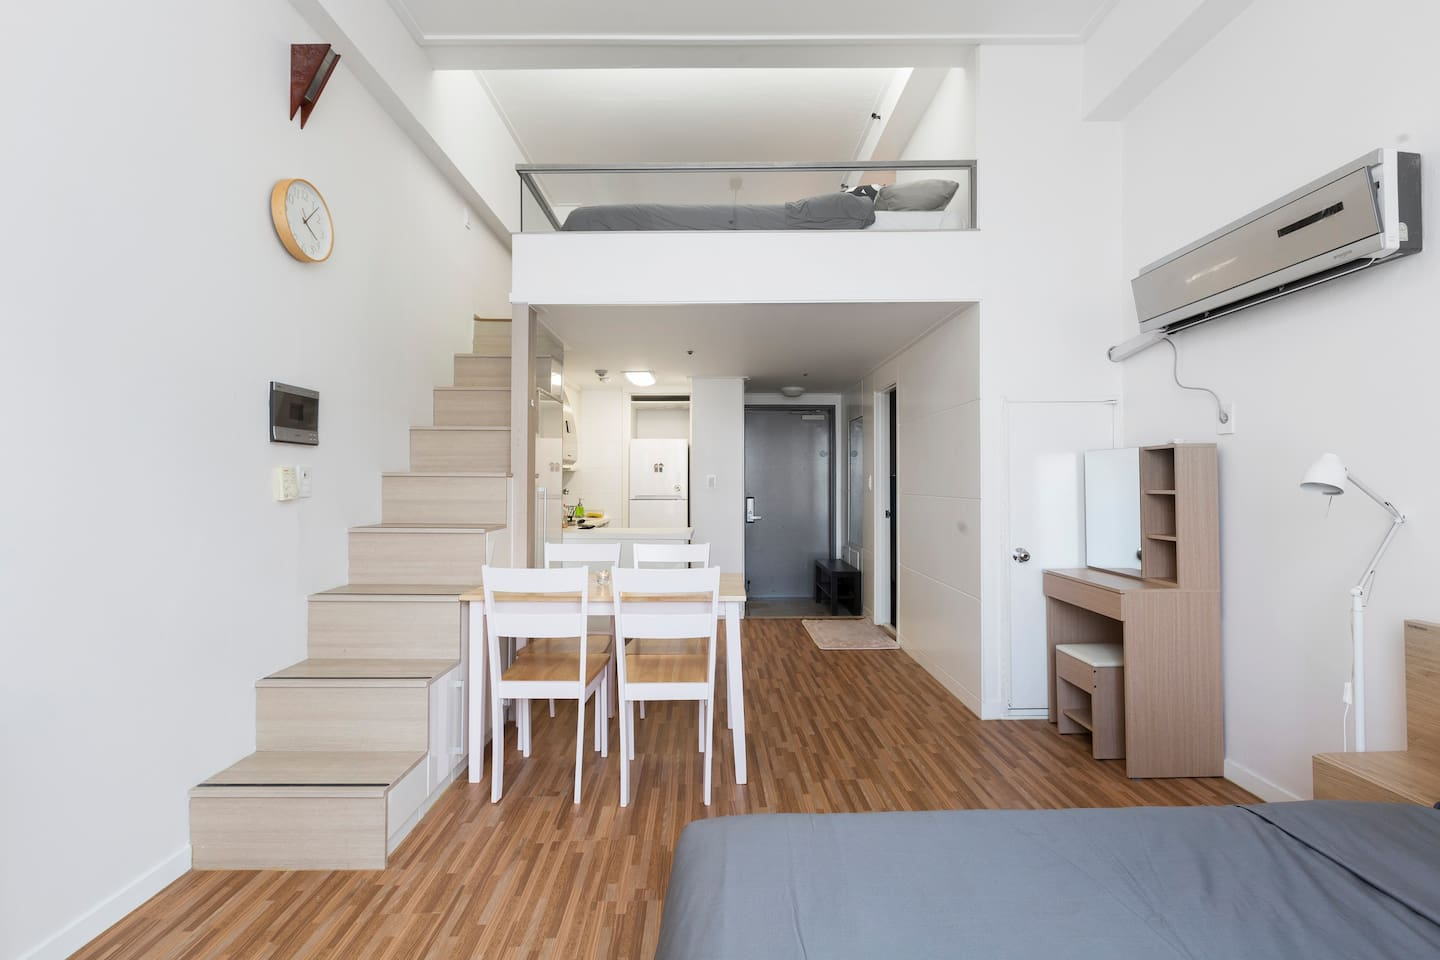 202 House Seoulstation Duplex Apt 202 House Seoul Station 9 Apartments For Rent In